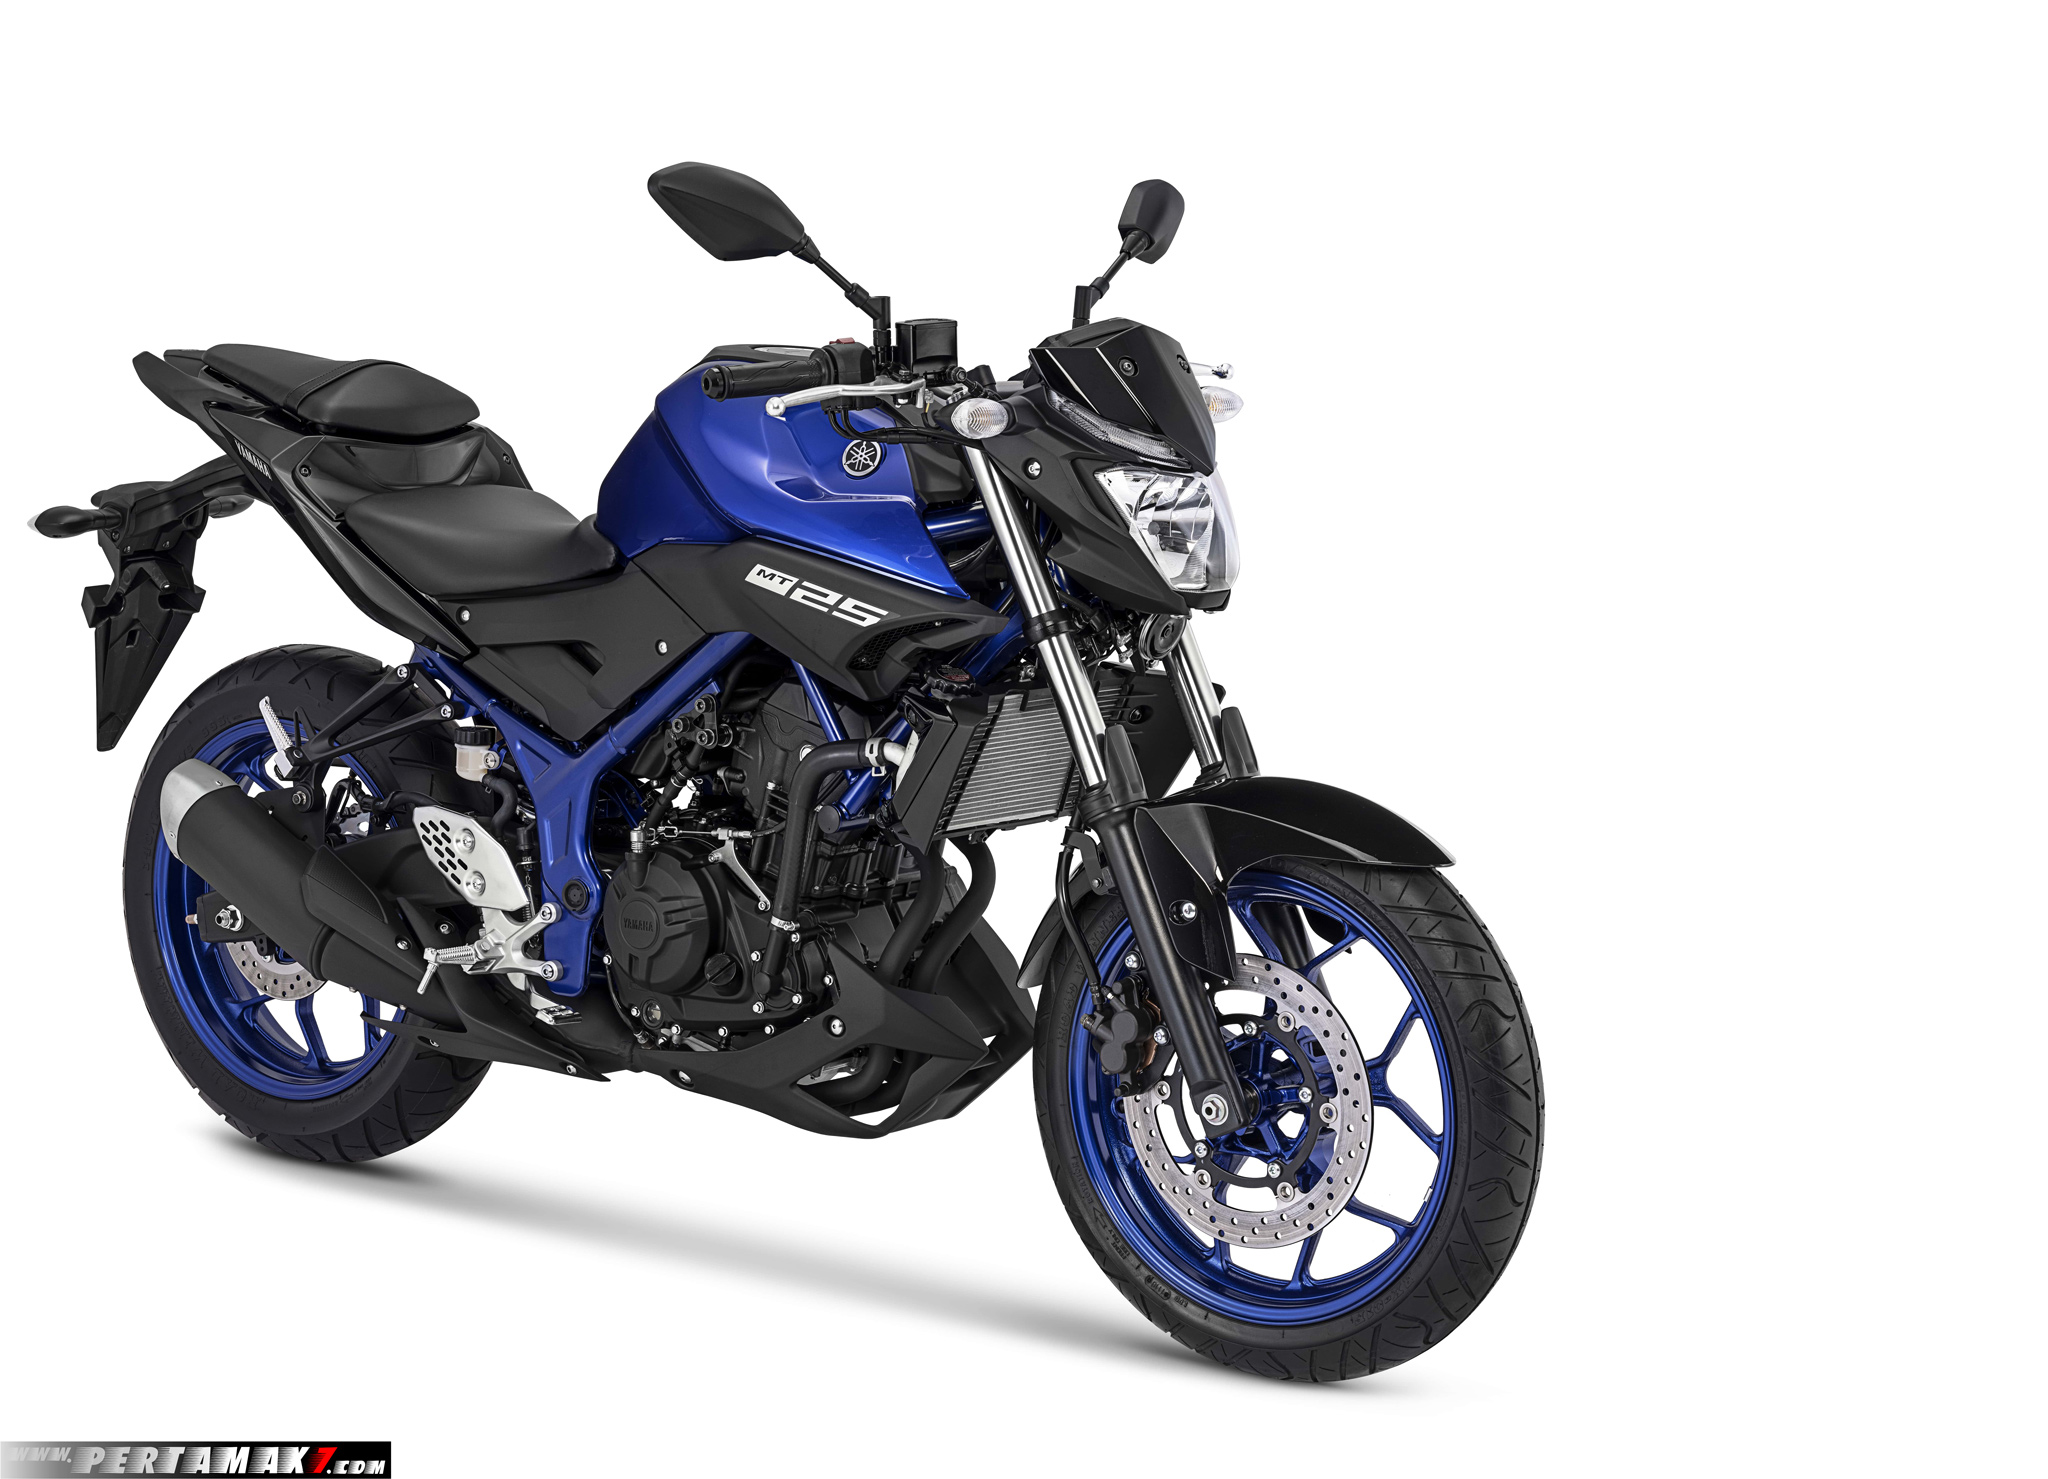 Warna Baru Yamaha MT-25 Versi 2019 Blue Metallic